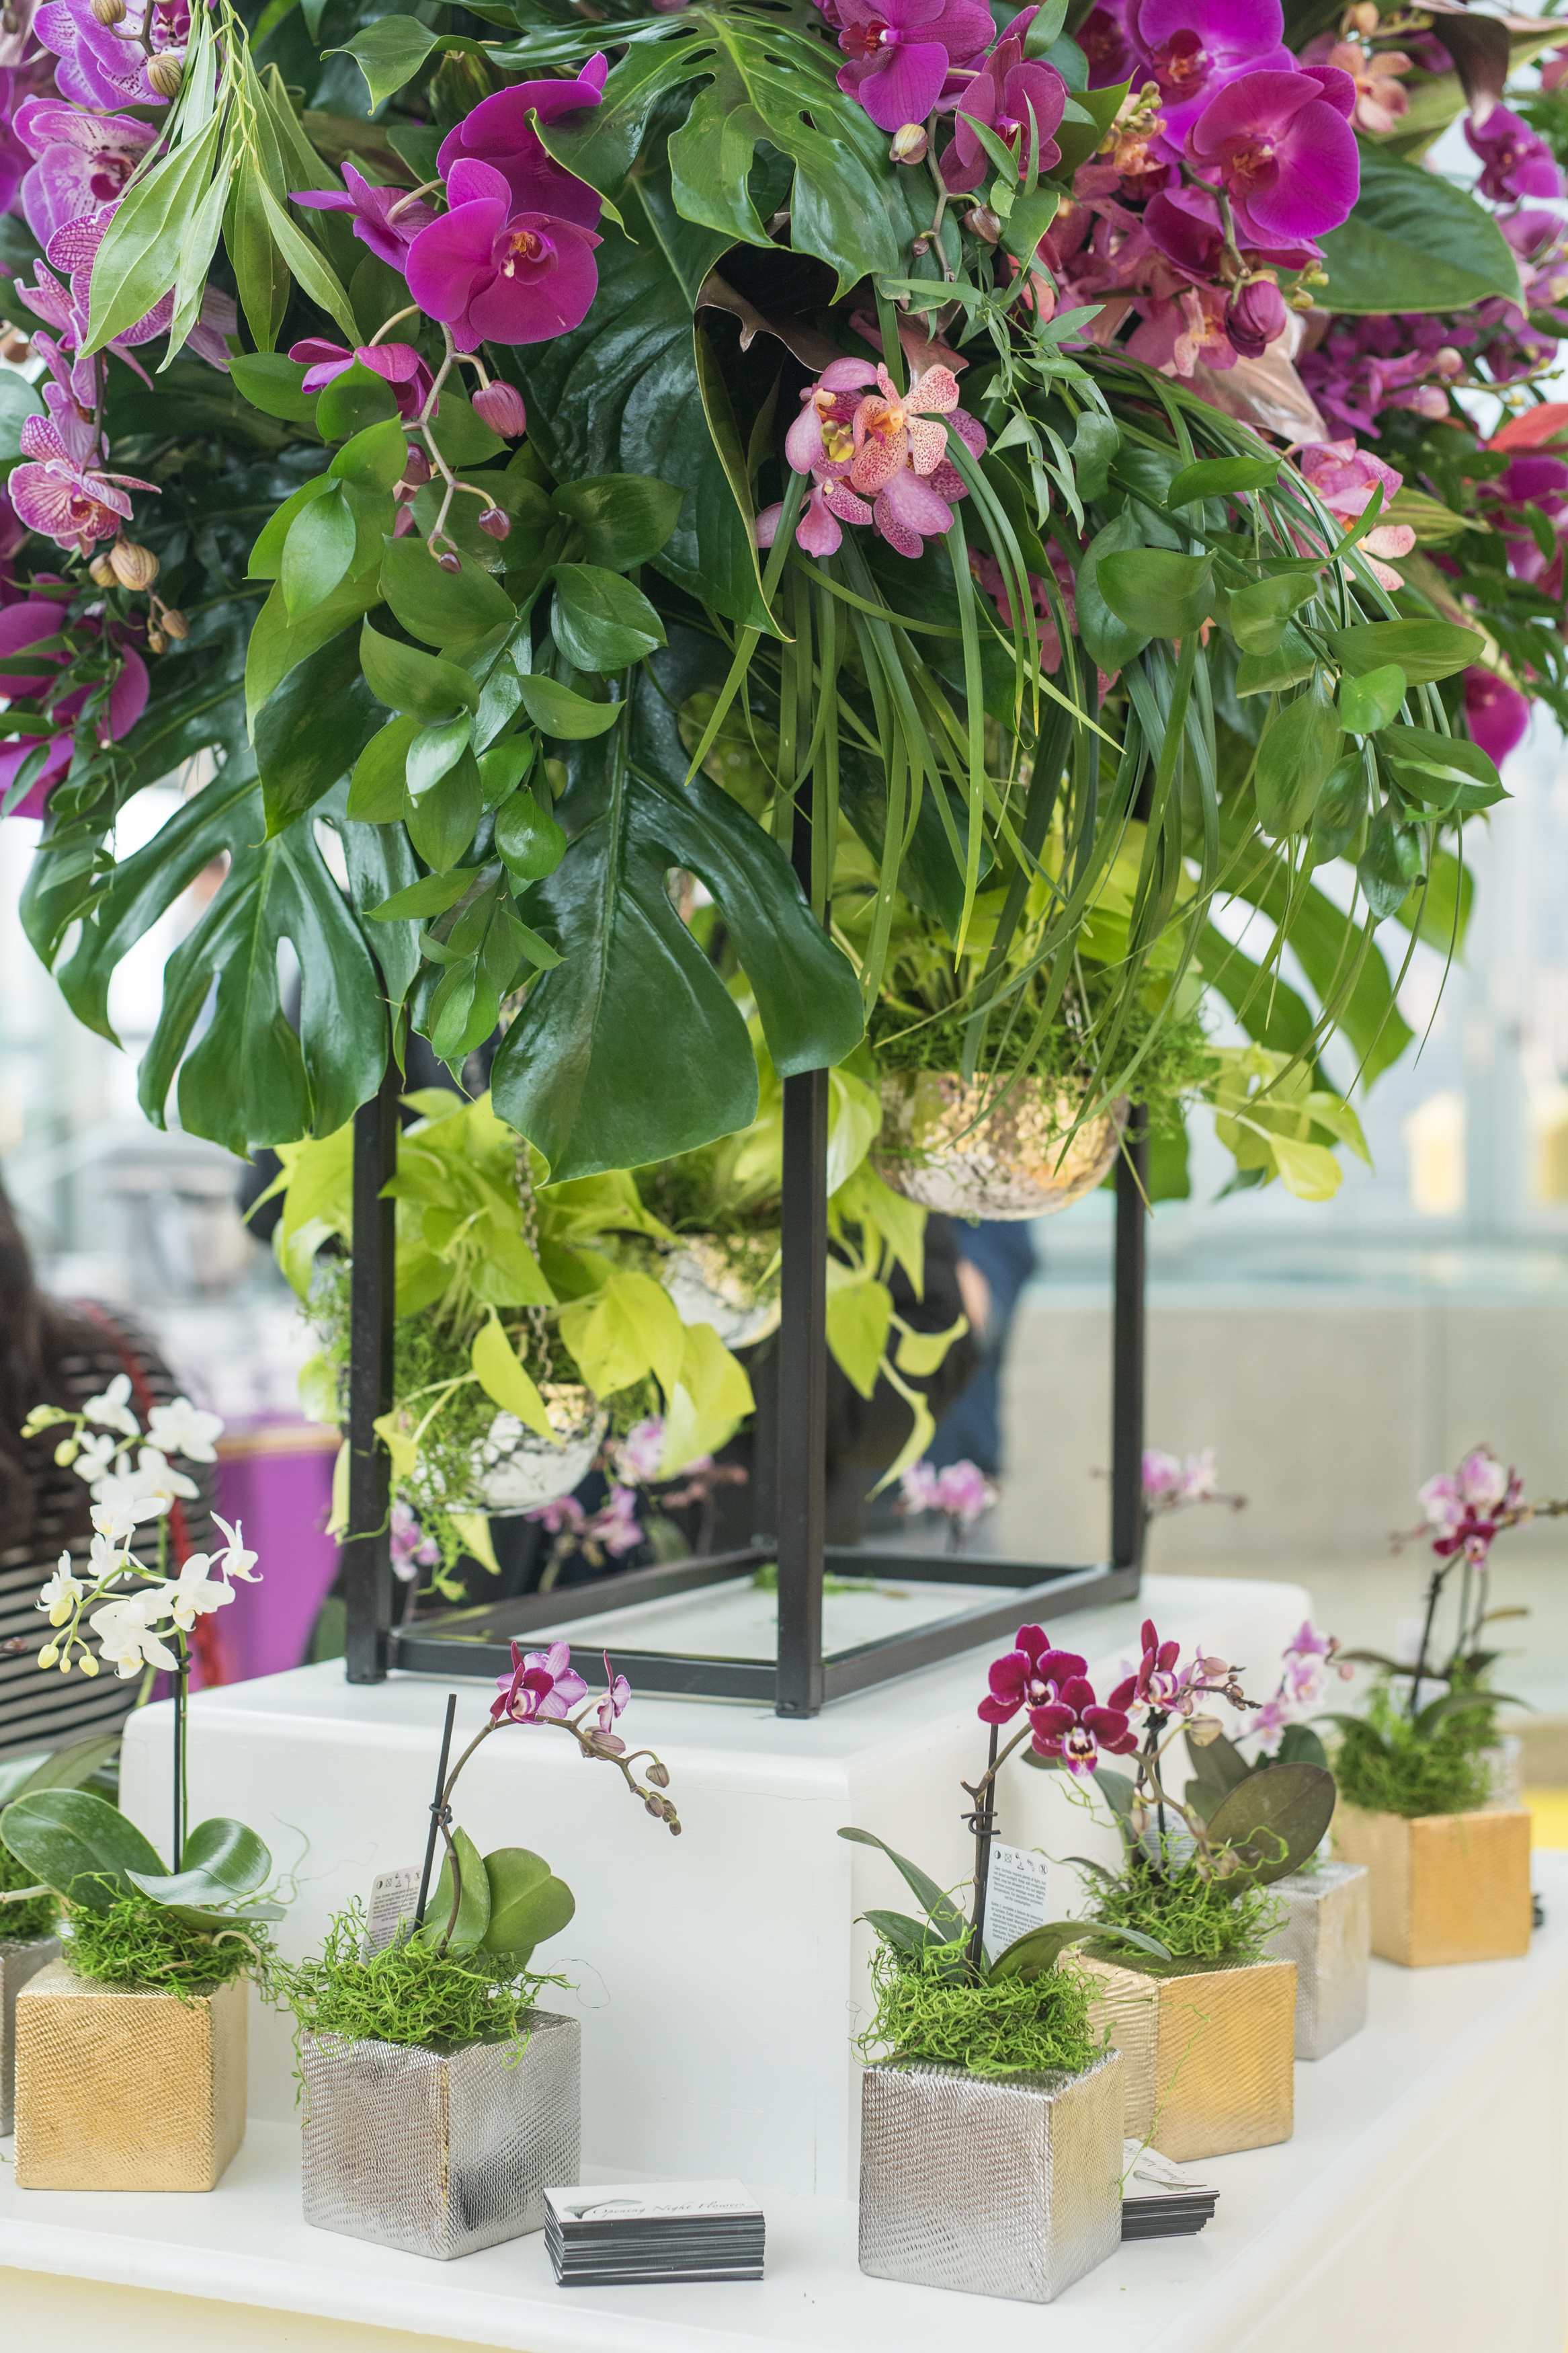 August In Bloom - Flower centrepiece and flower pots - #SQ1Bridal (Square One Shopping Centre)